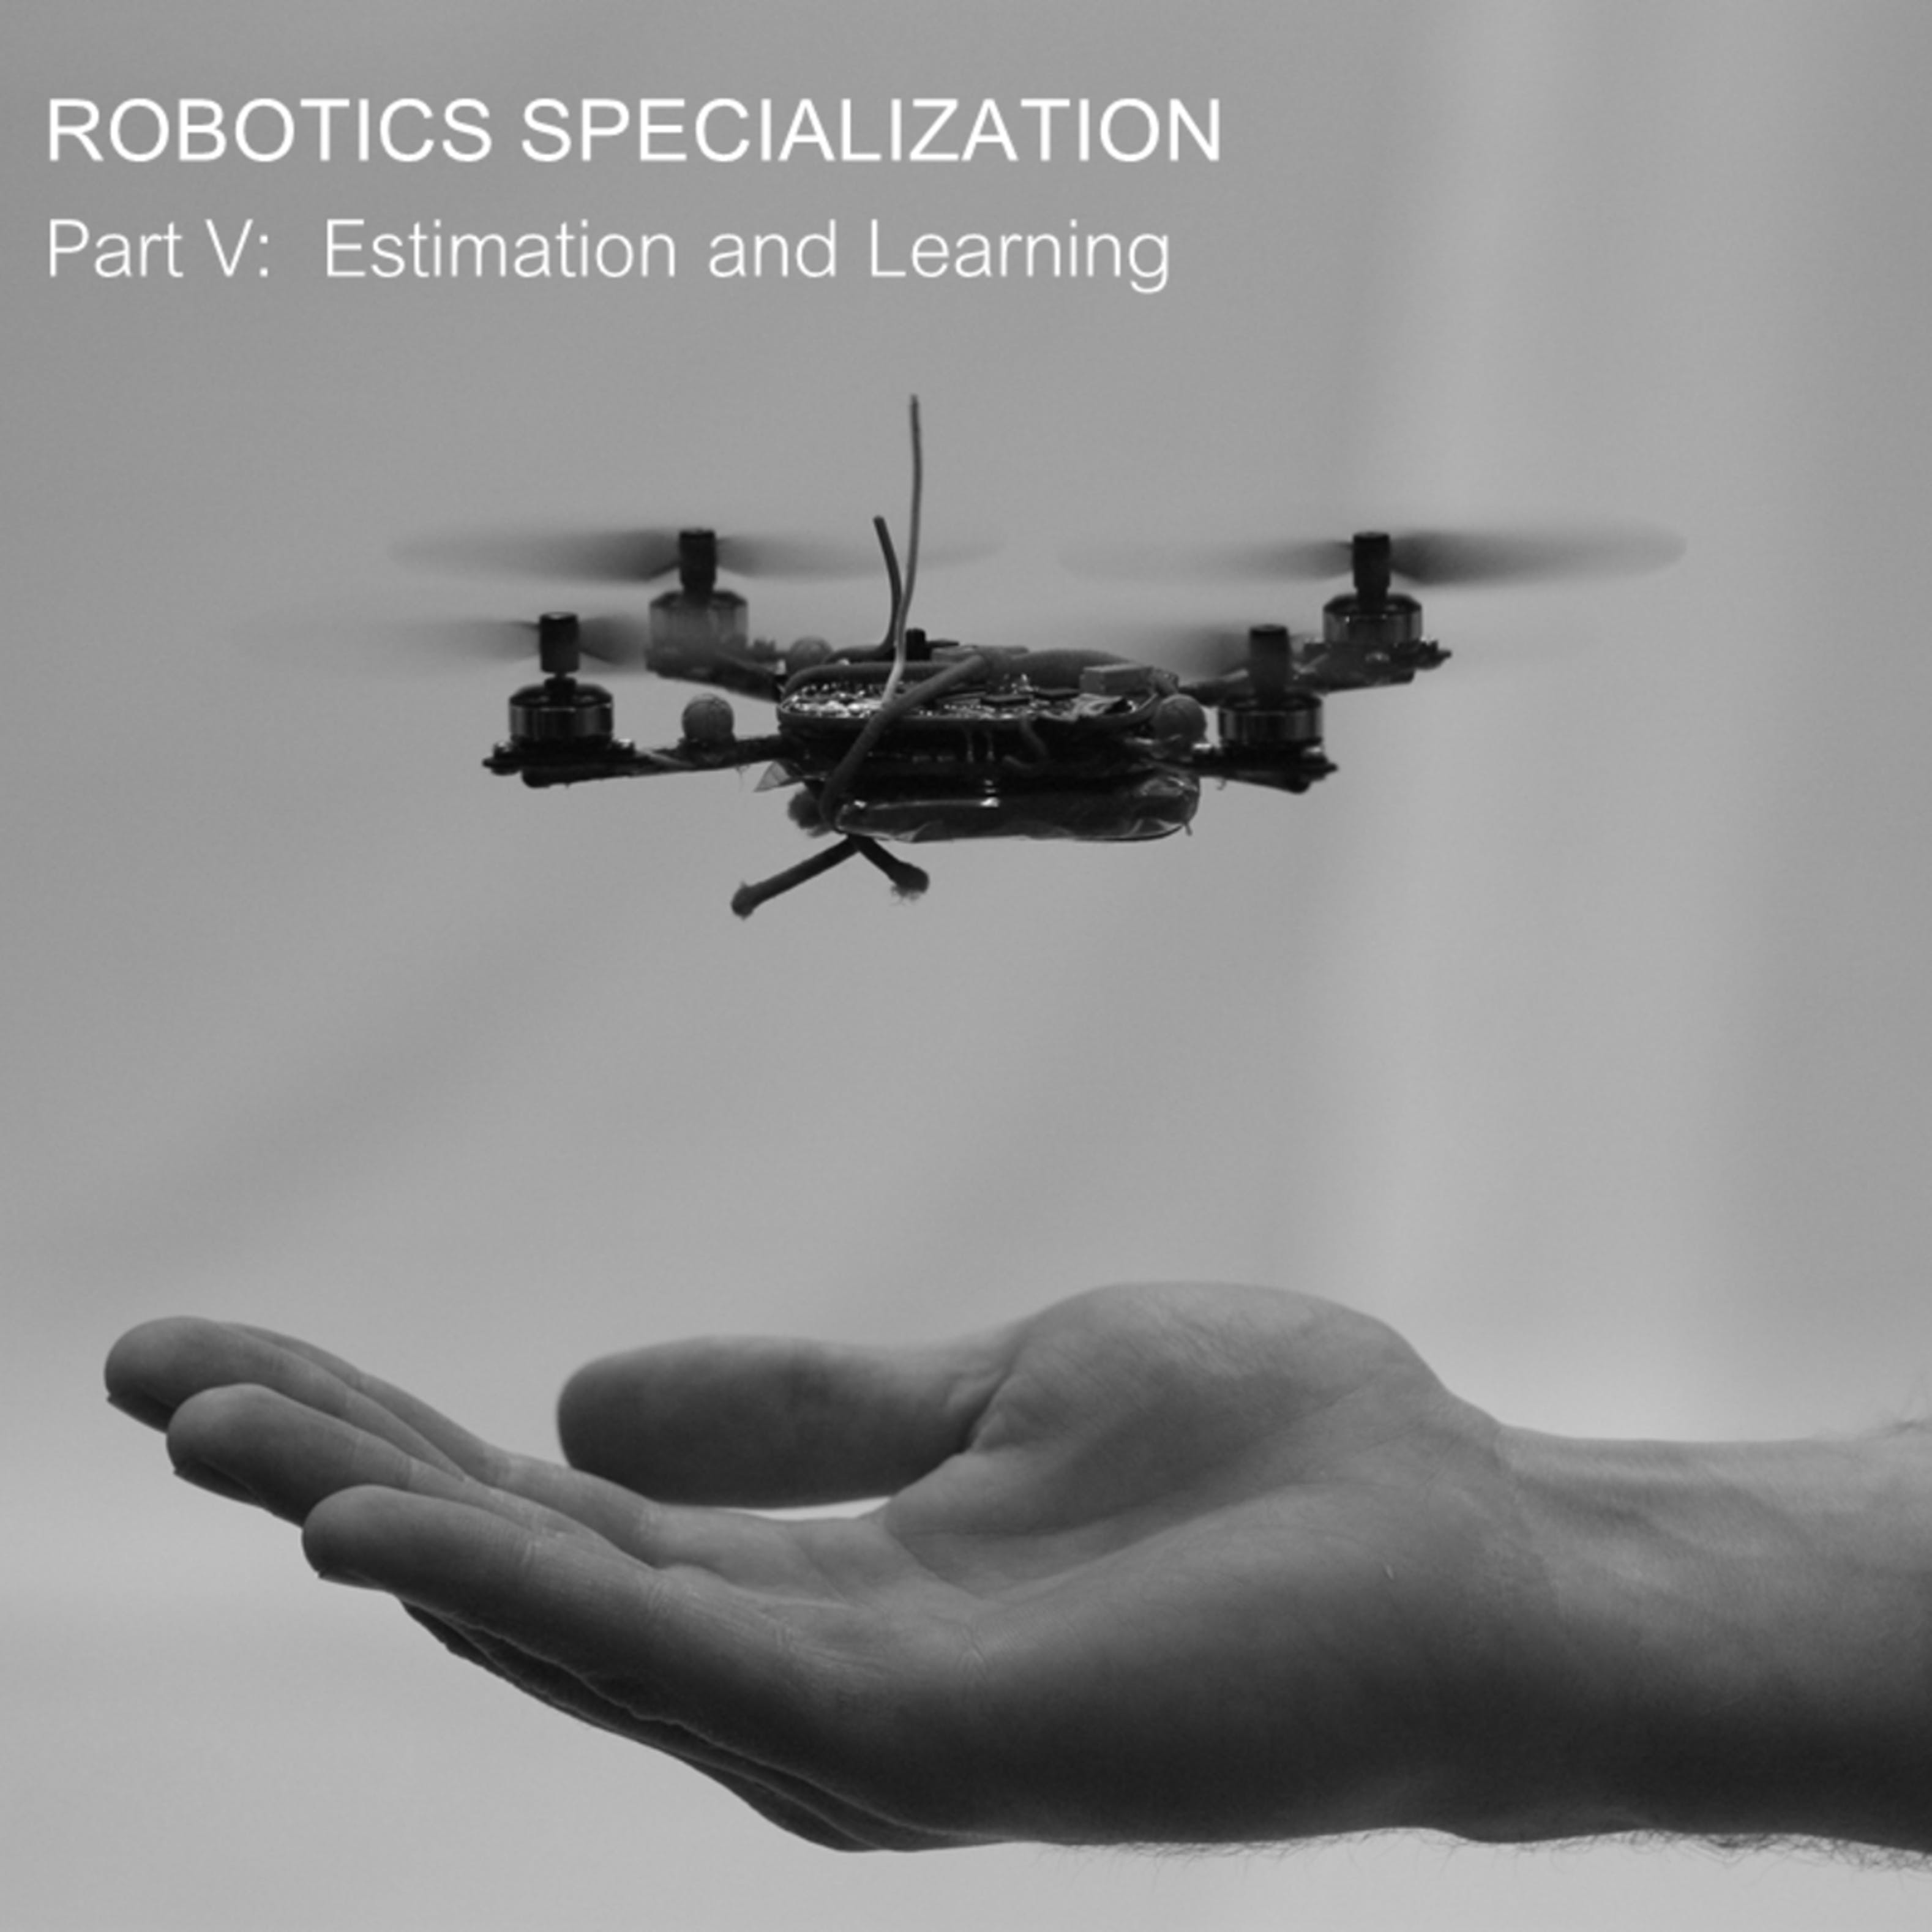 Robotics: Estimation and Learning | Coursera